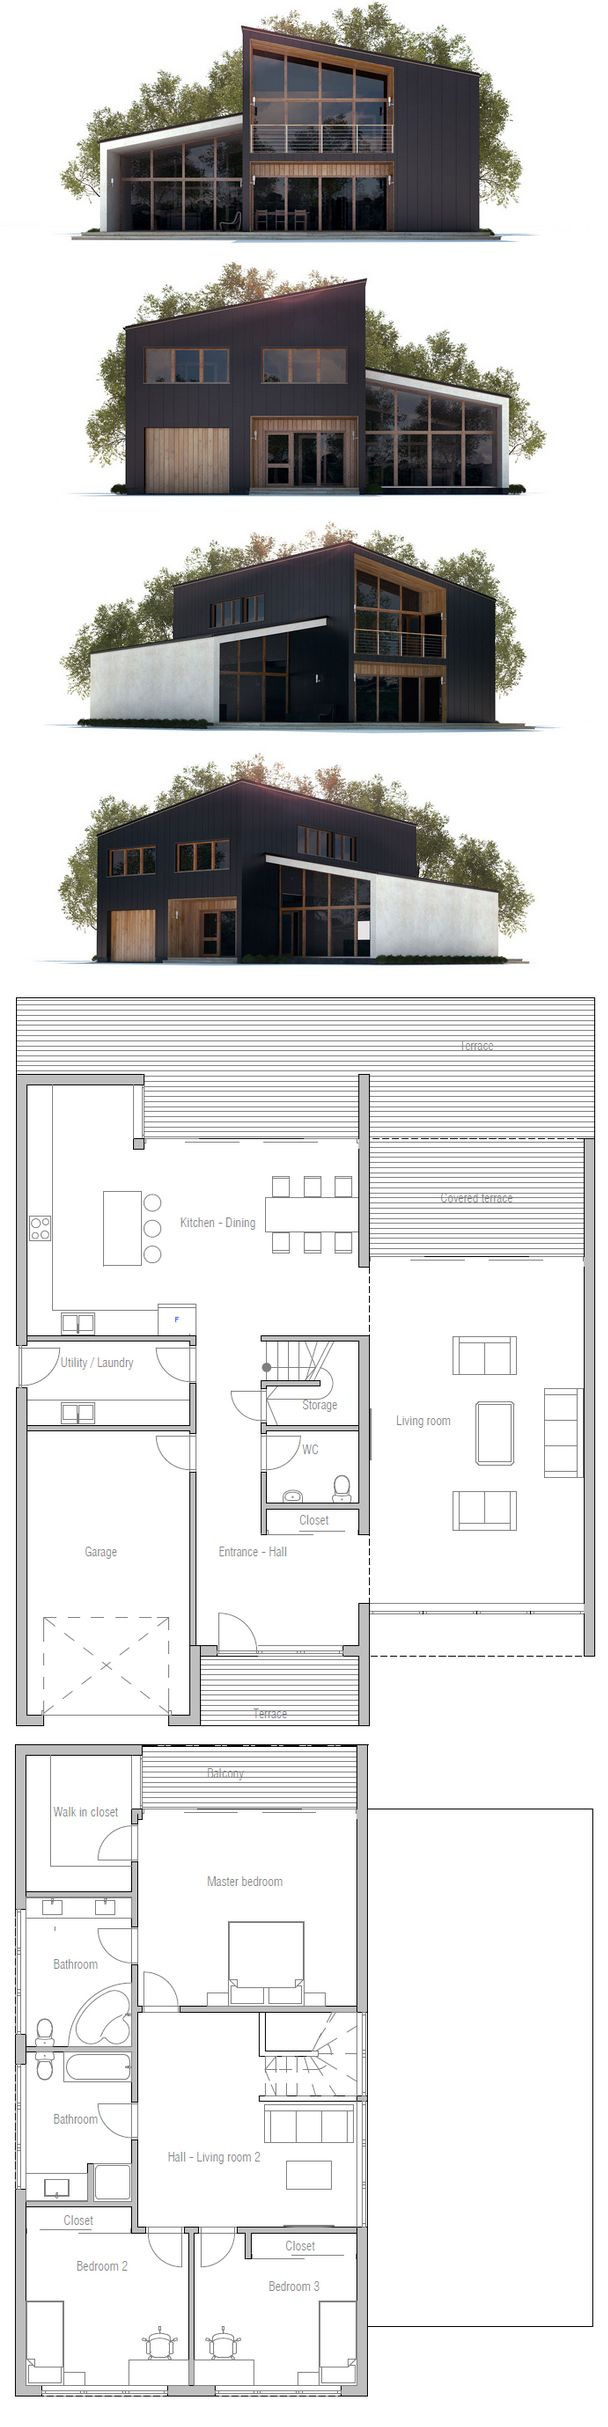 House Plan in Modern Architecture, three bedrooms, garage, two living areas, high ceiling in the living room